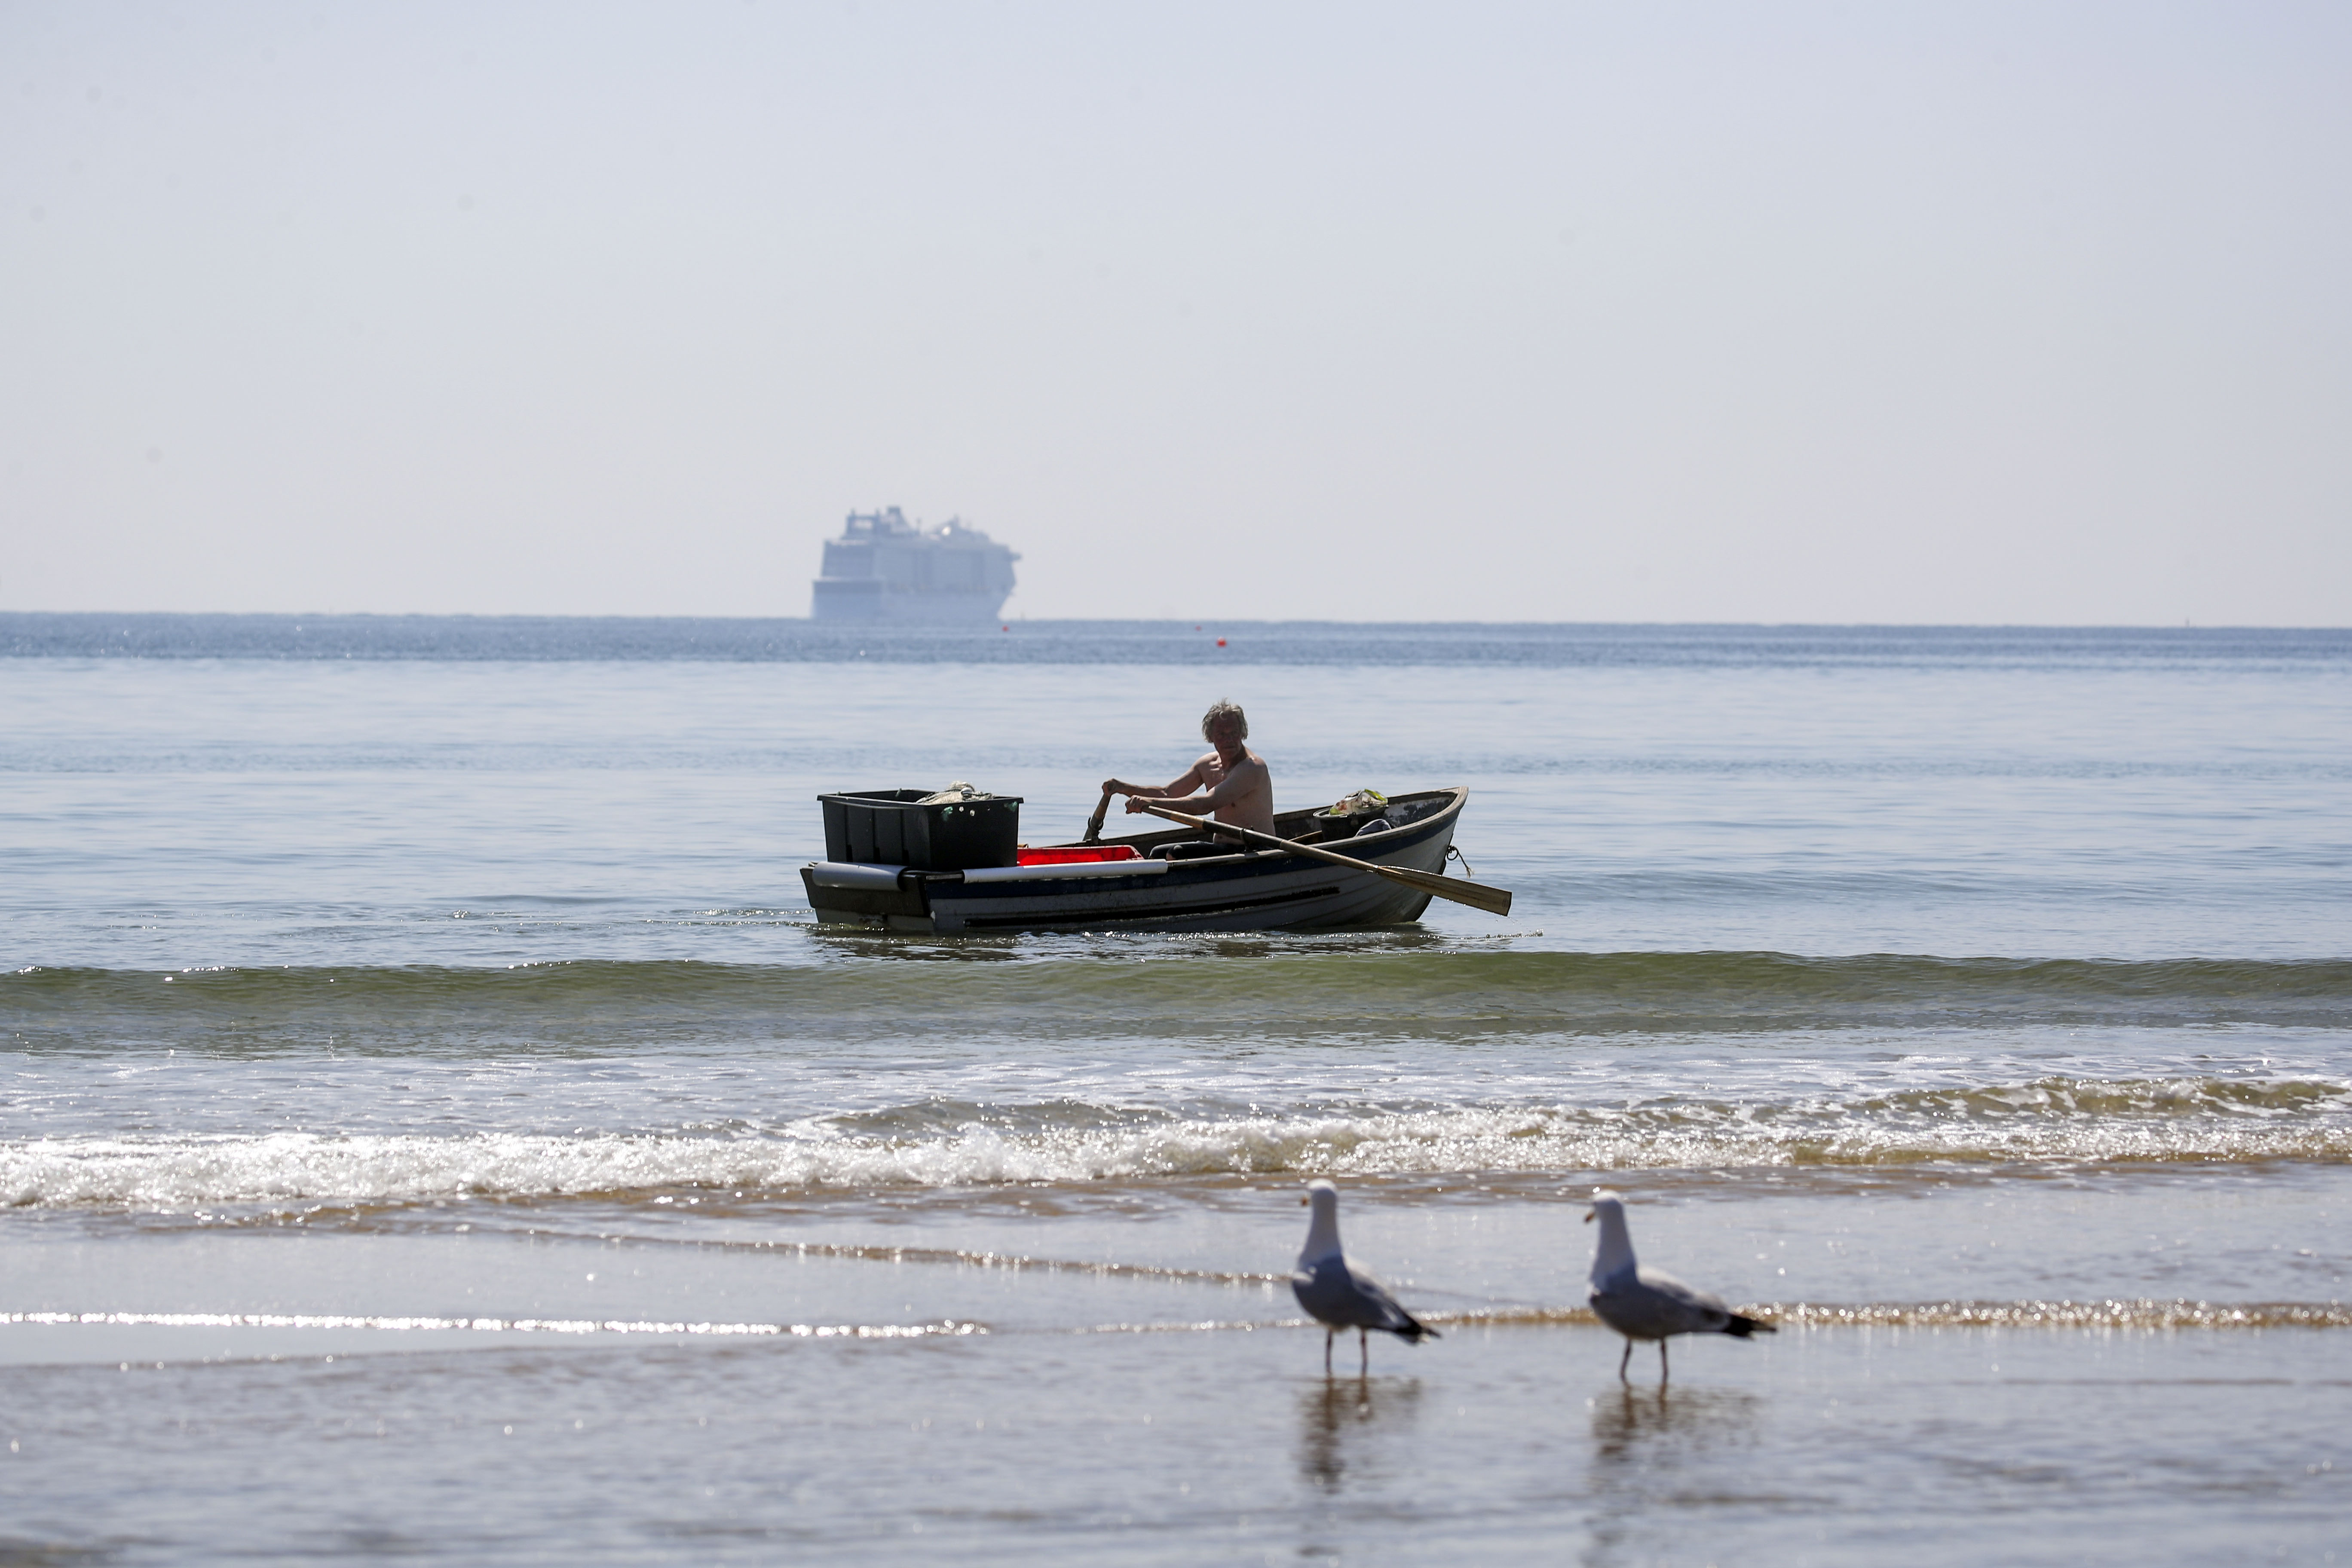 <p>A man rows a boat on the Solent in Bournemouth, Dorset. Picture date: Monday April 19, 2021.</p>